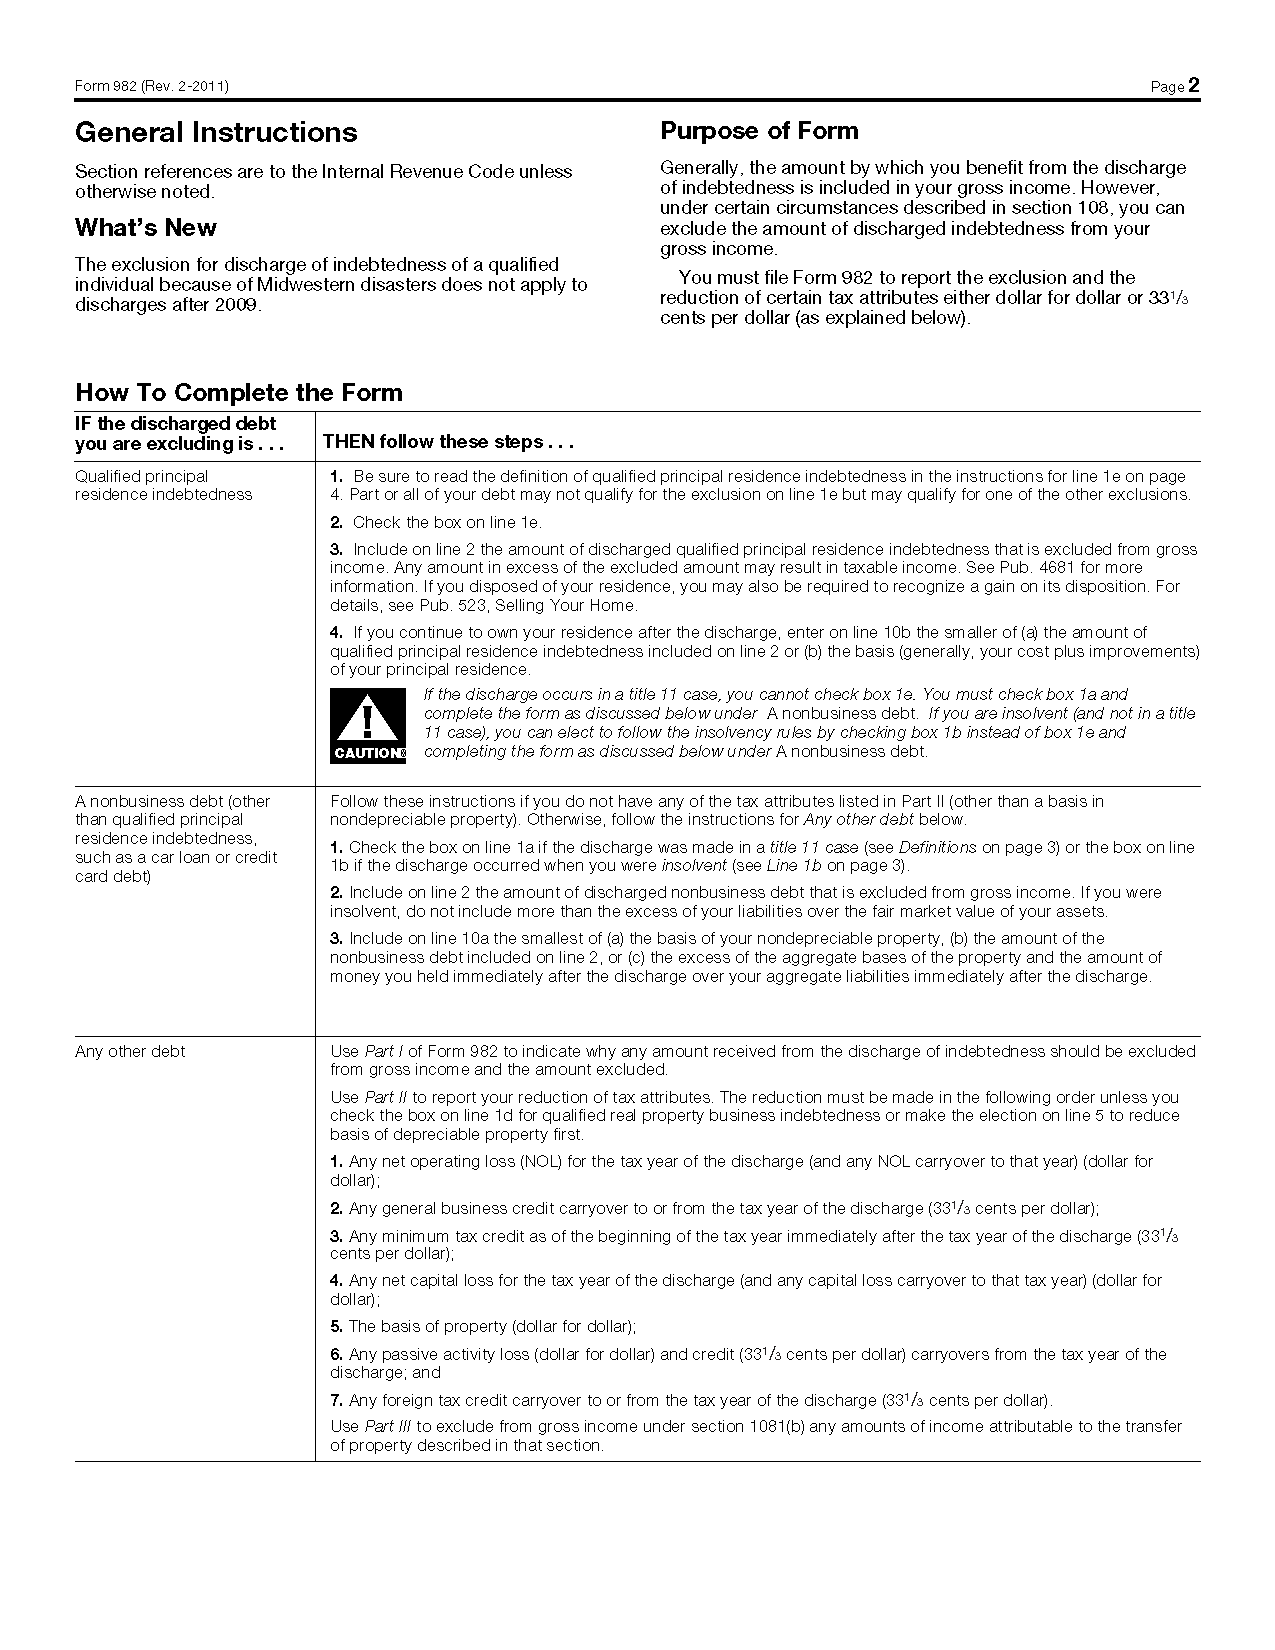 Worksheets Irs Insolvency Worksheet irs insolvency worksheet delibertad publication 4681 llamadirectory com